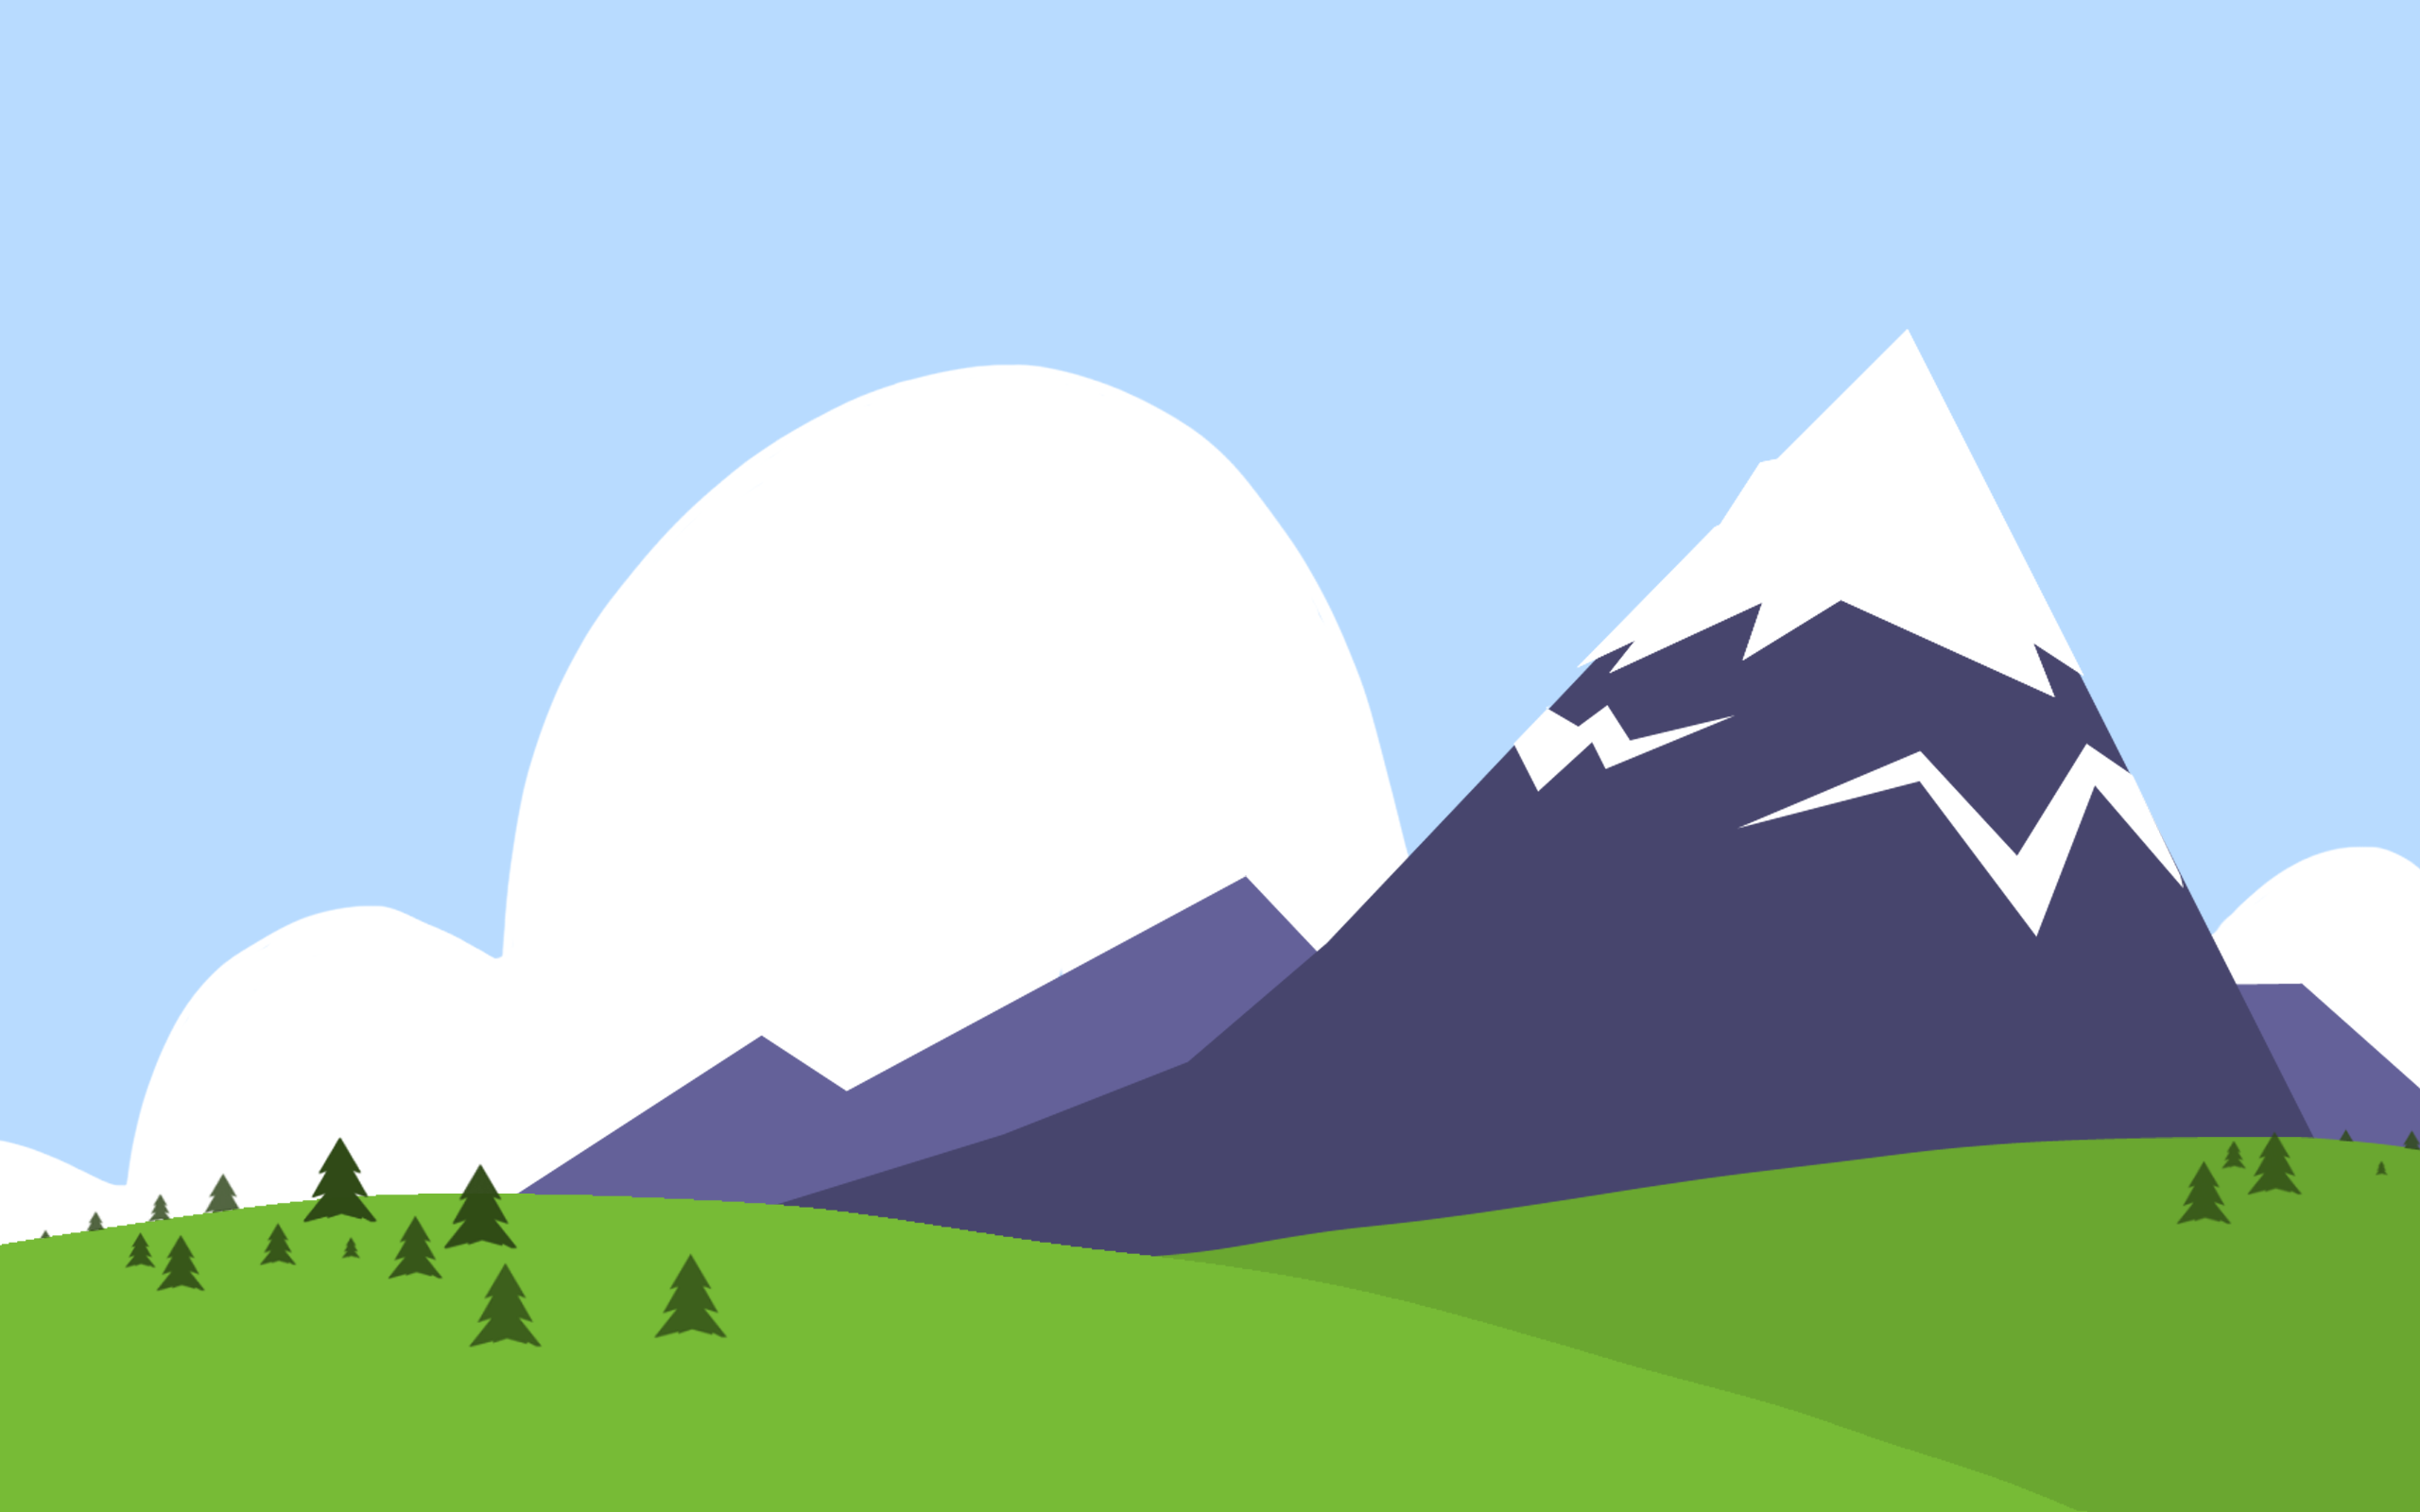 Mountain clipart background.